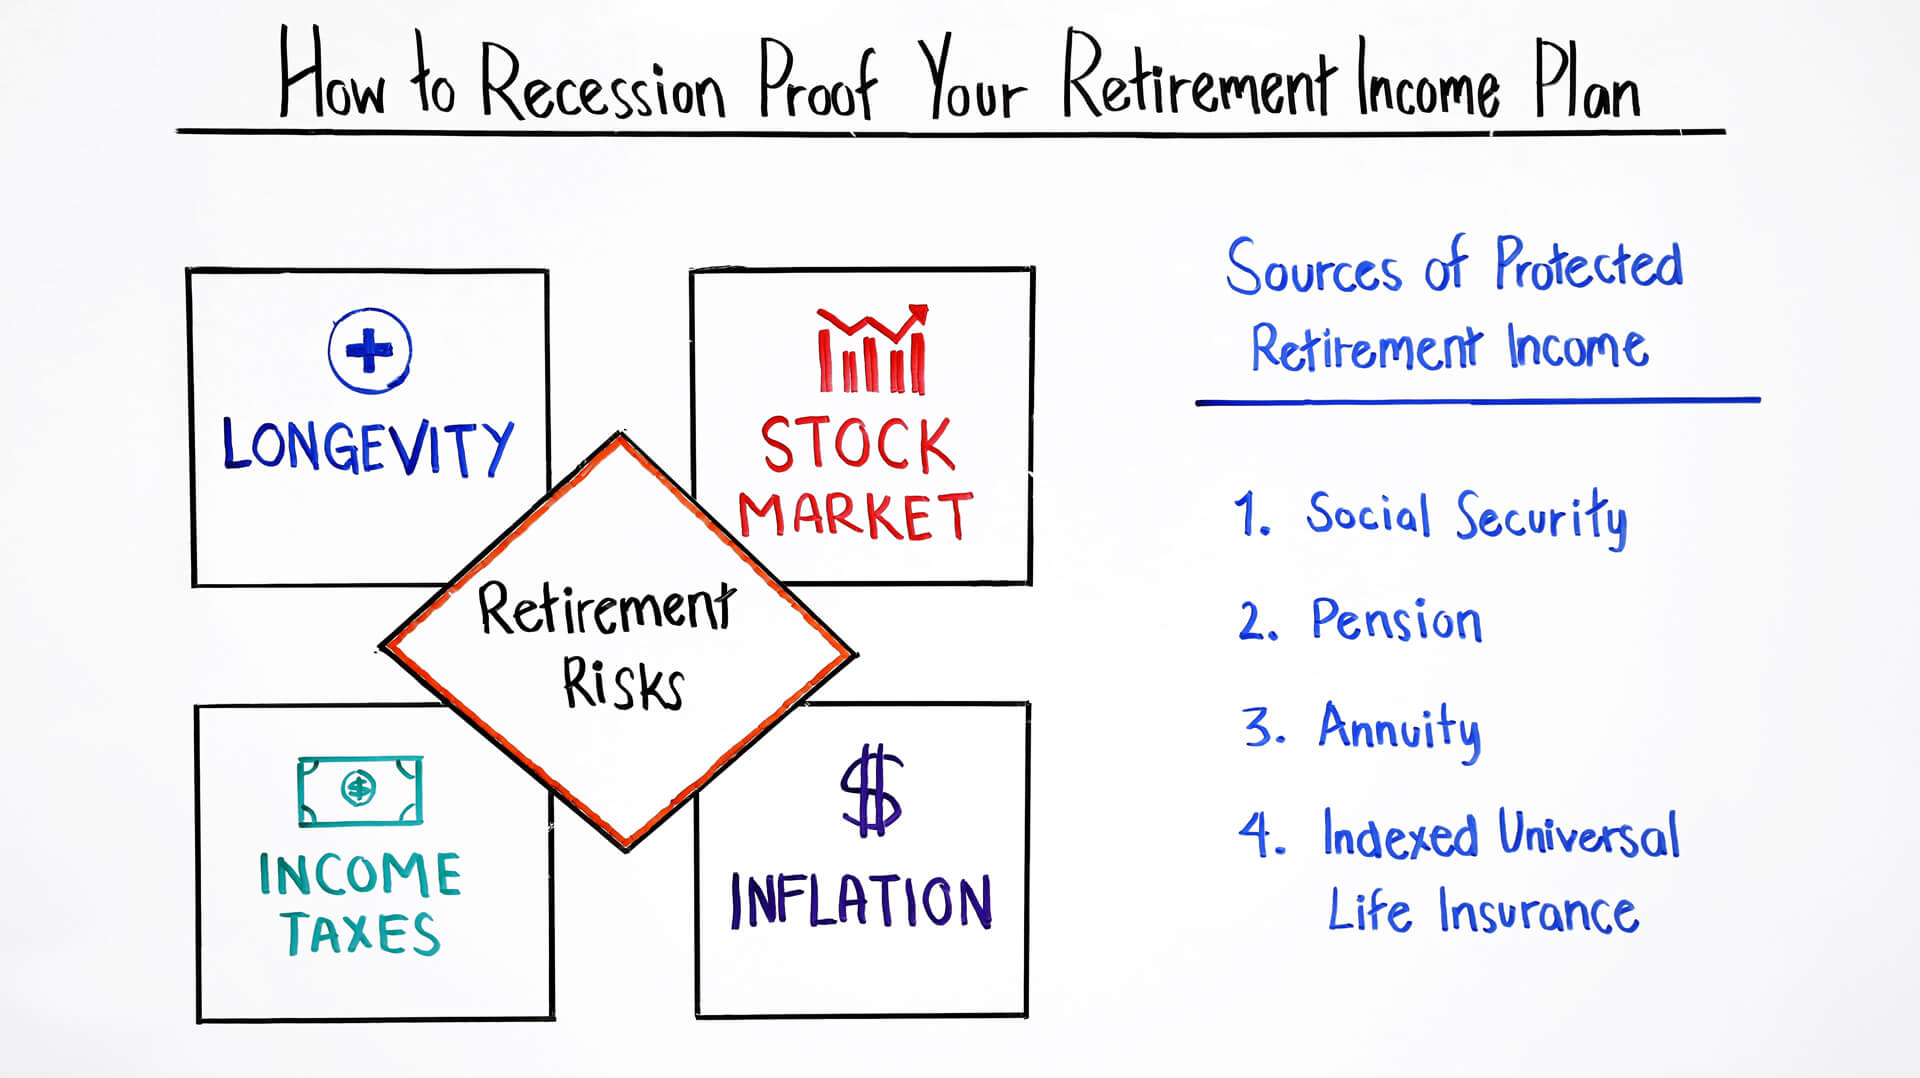 how to recession proof your retirement income plan